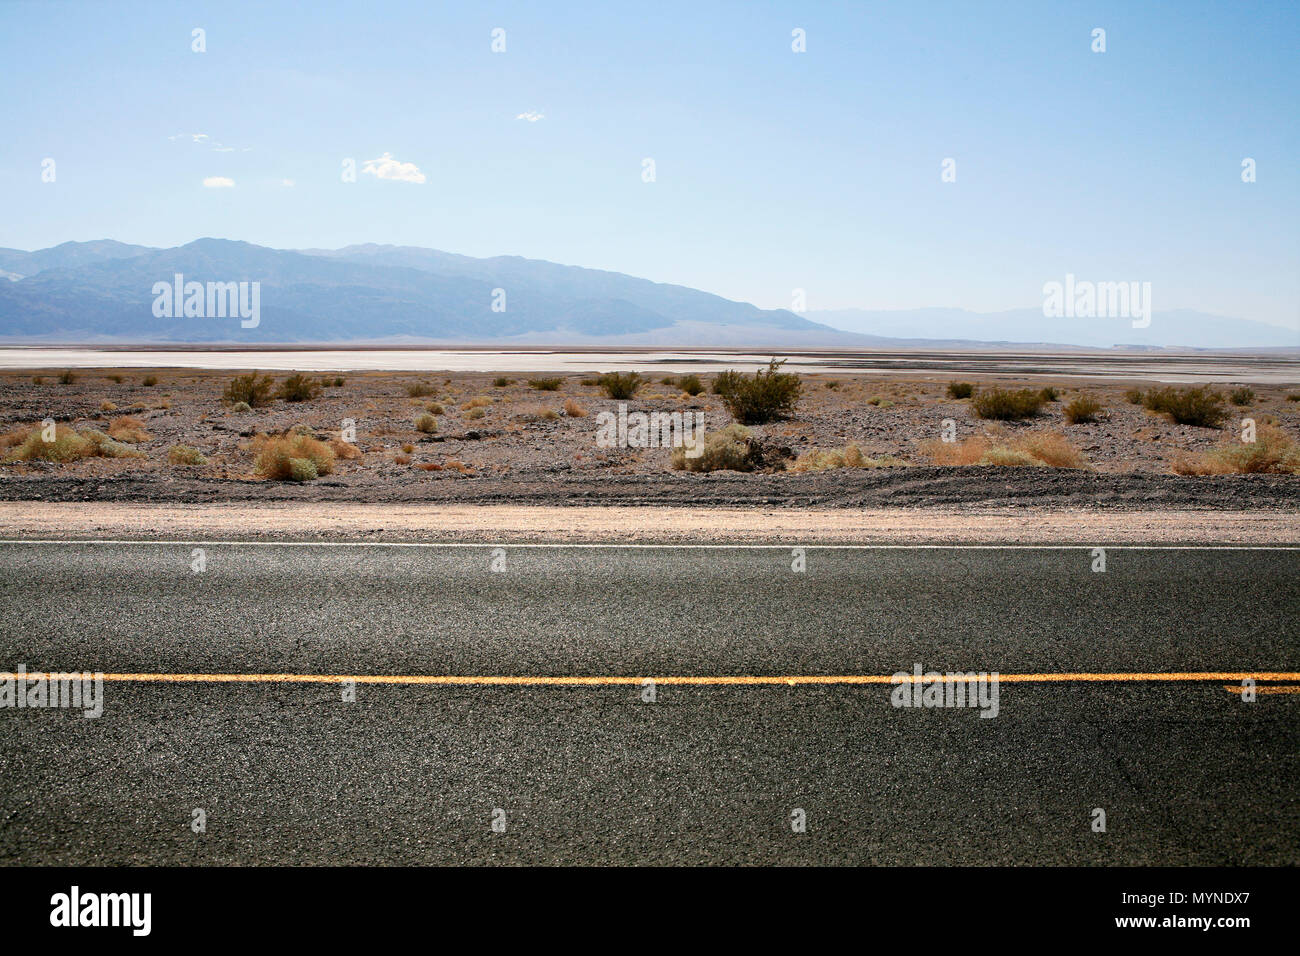 Tarmac highway with bright yellow road markings in California desert on hot sunny day - Stock Image